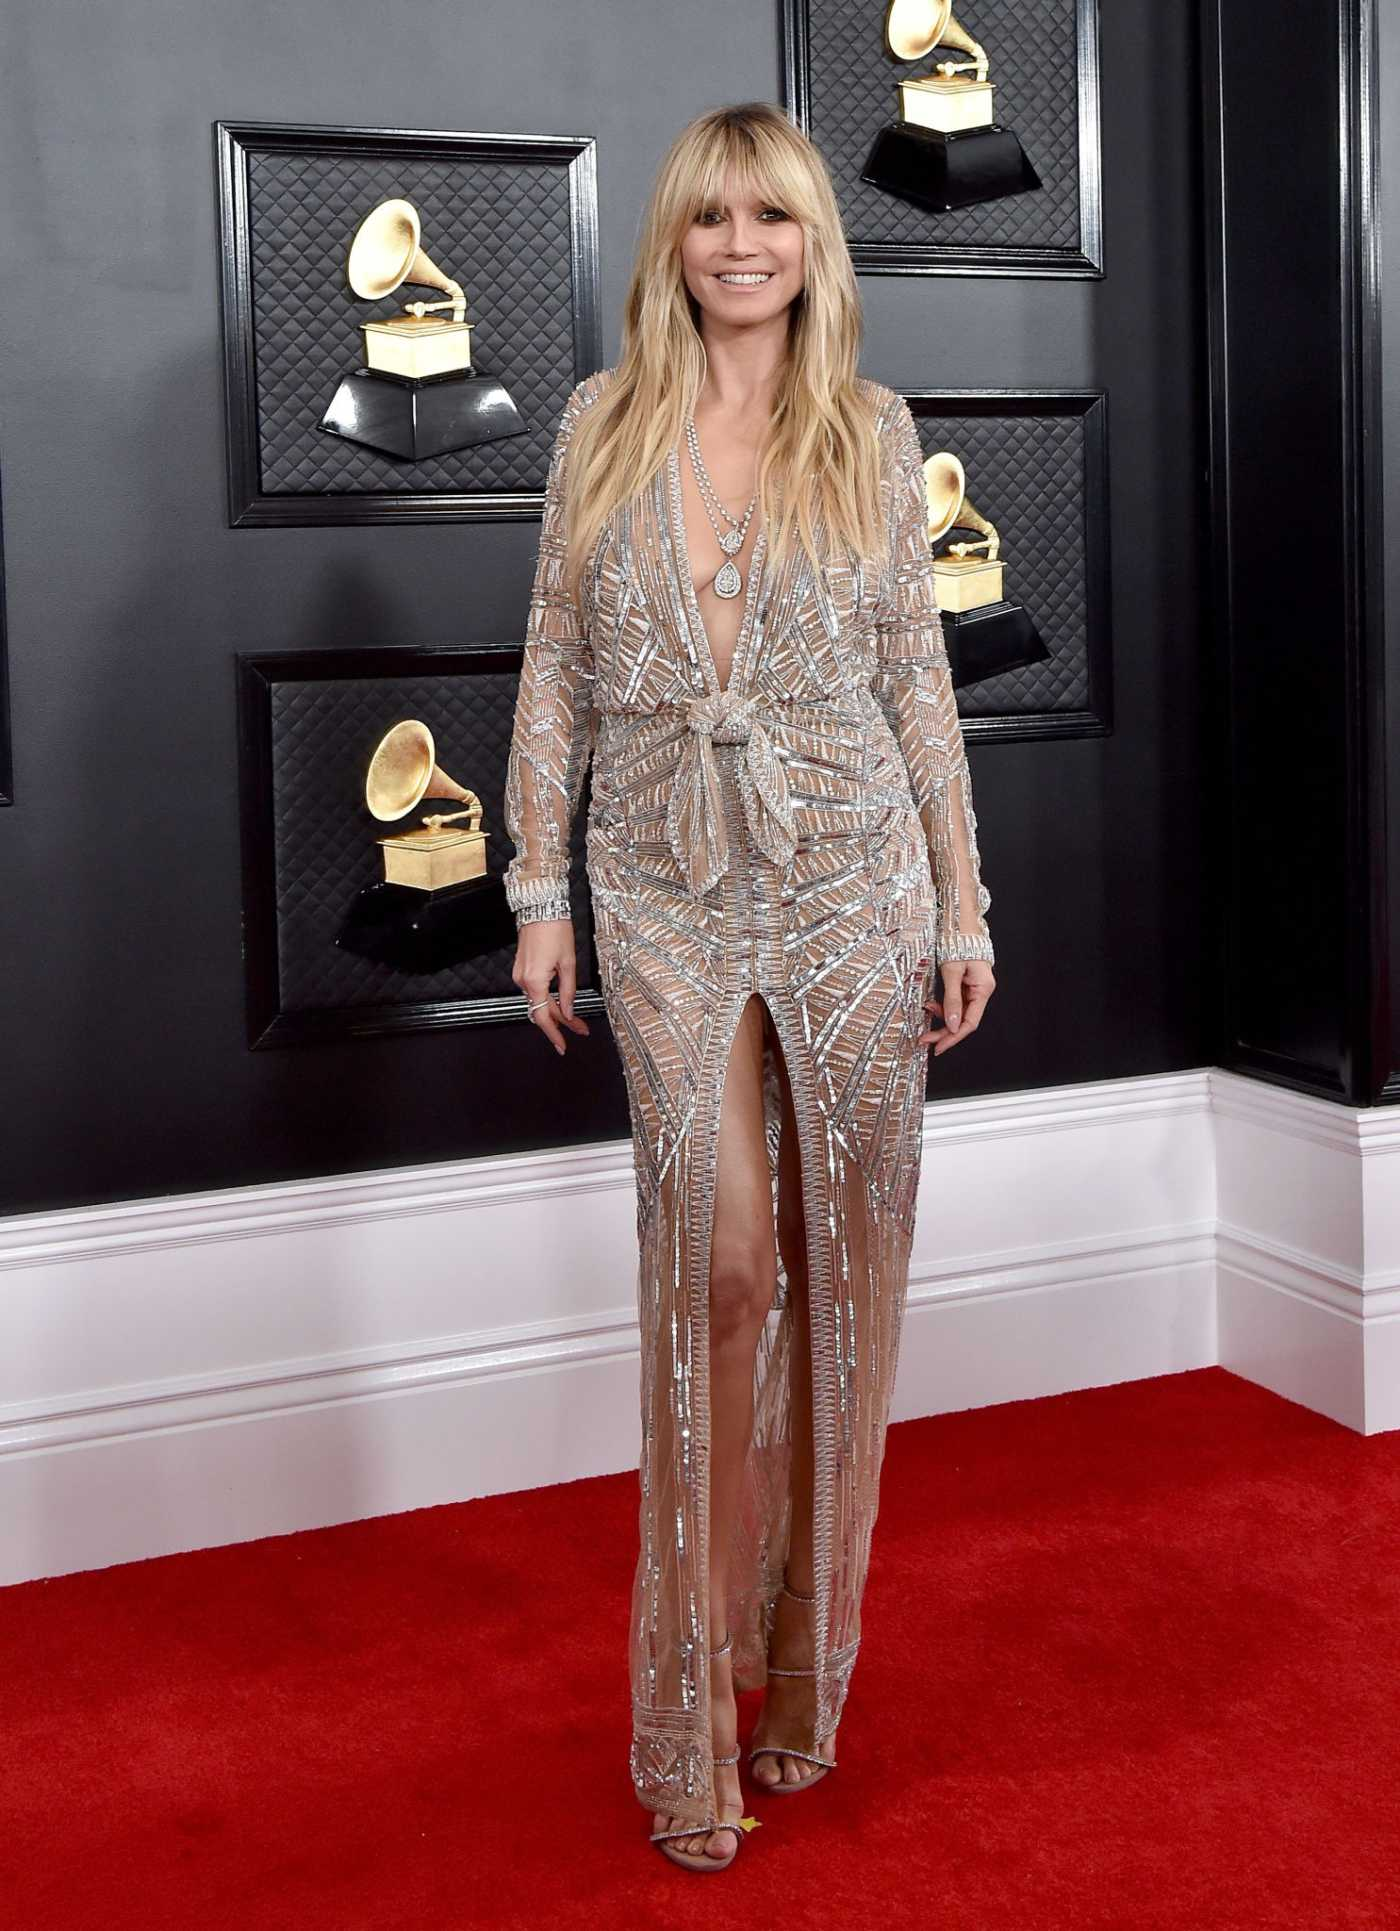 Heidi Klum Attends the 62nd Annual Grammy Awards at Staples Center in Los Angeles 01/26/2020